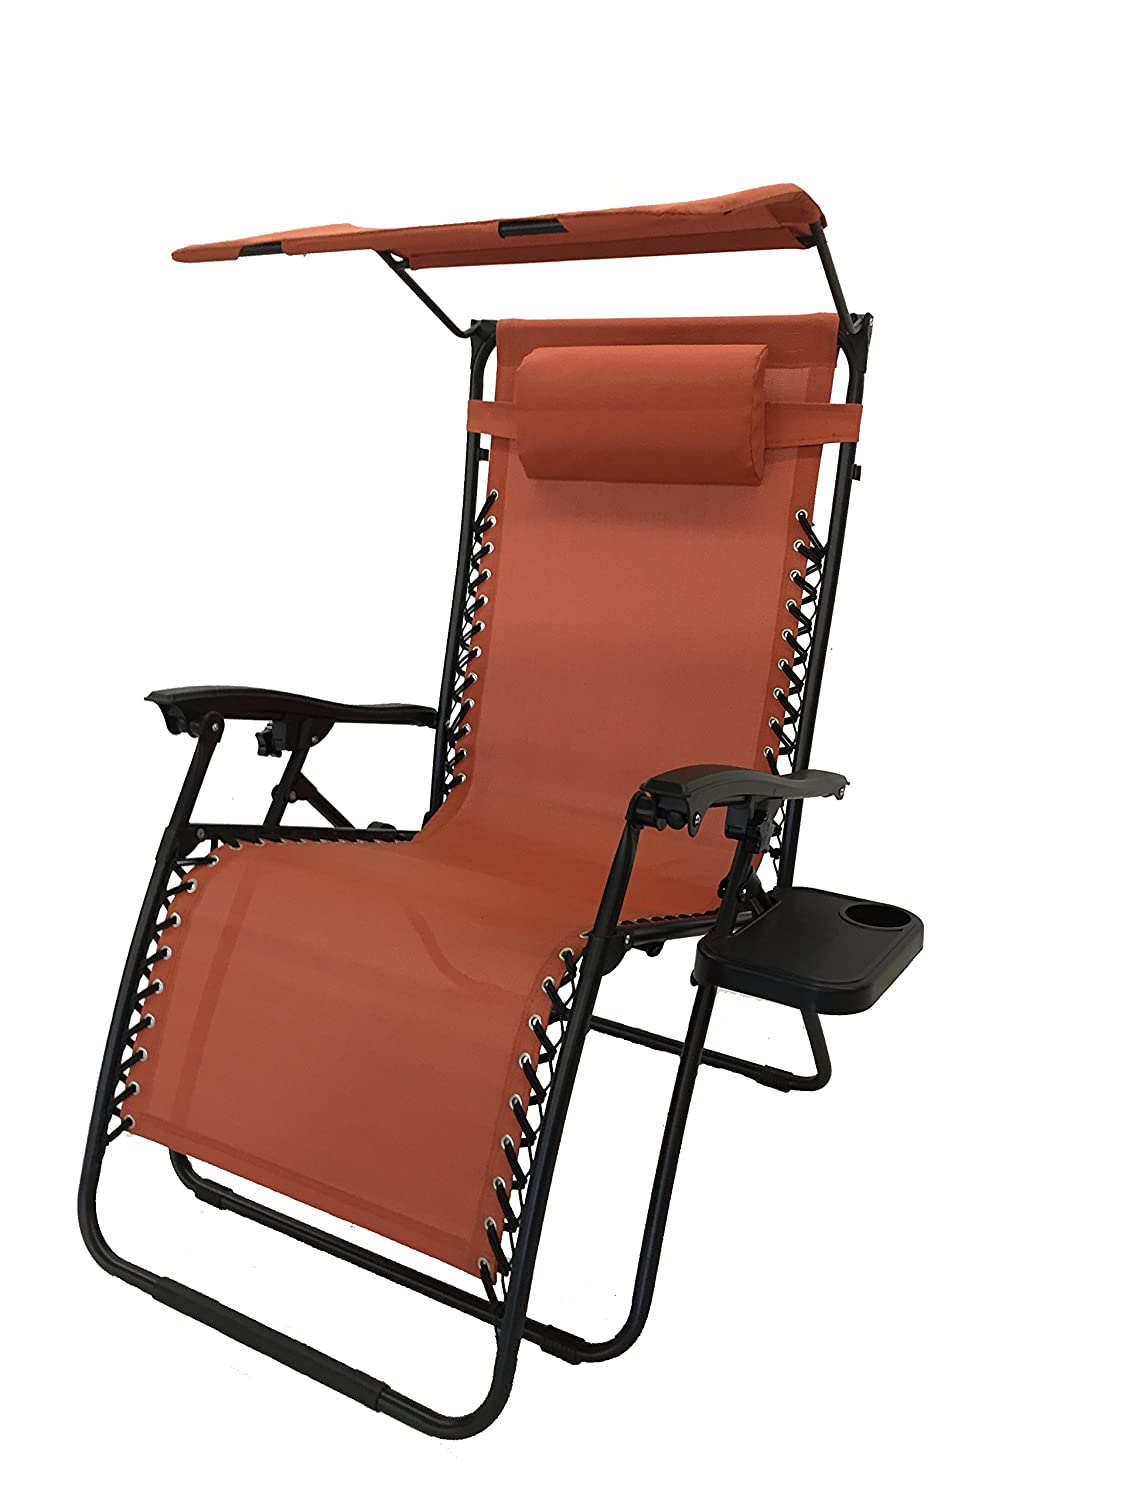 Deluxe Oversized Extra Large Zero Gravity Chair with Canopy Tray – Terra Cotta